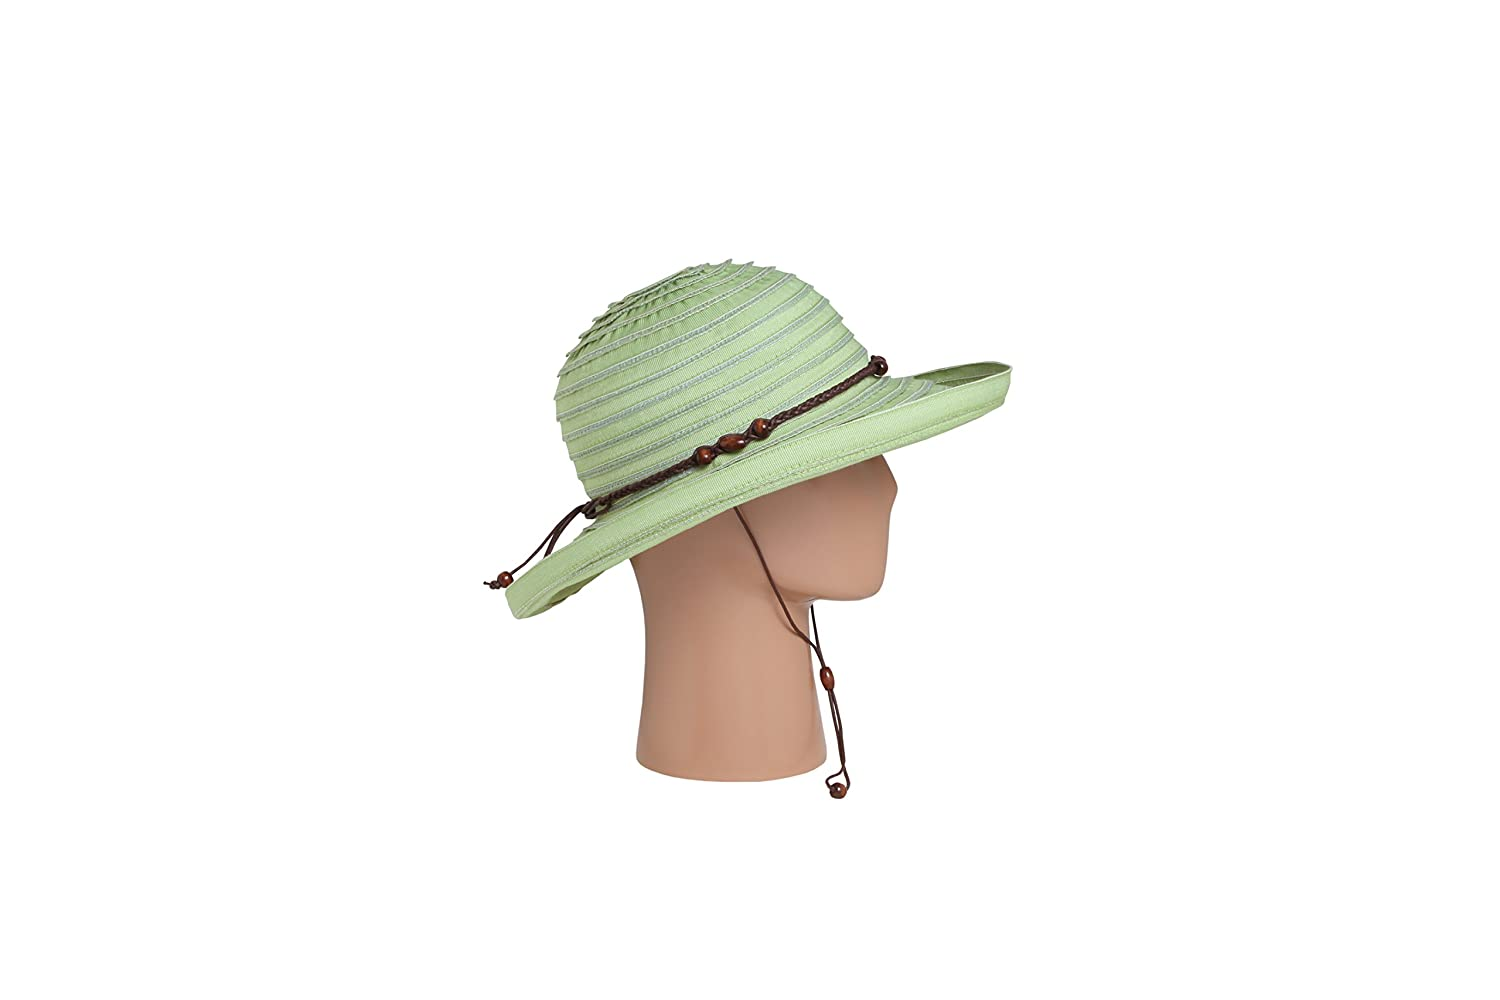 e26838f5976 Sunday Afternoons Women s Vineyard Hat Bark One Size INC ...